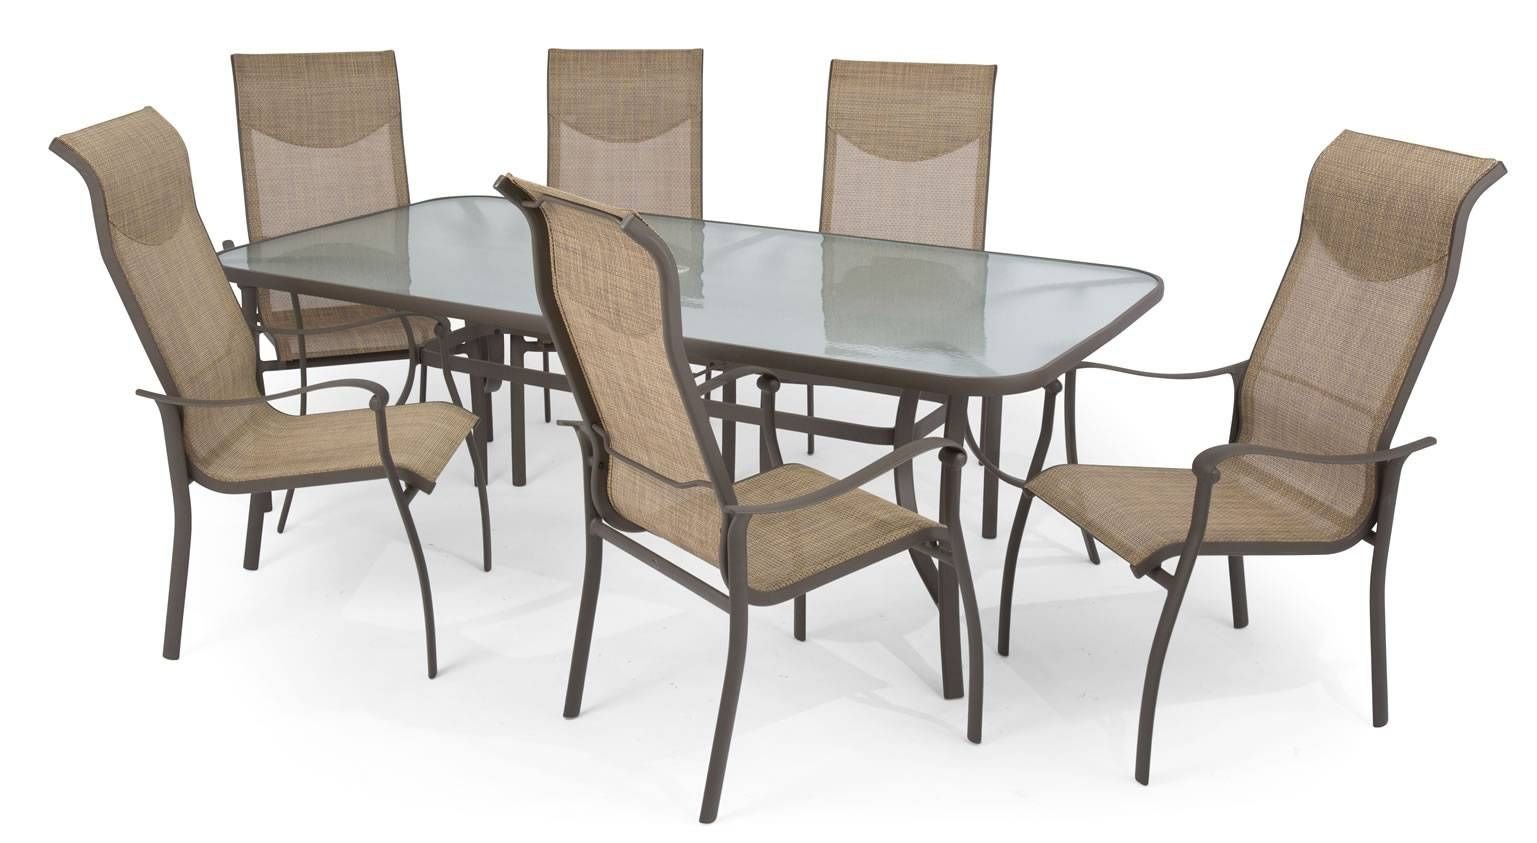 Exceptional Round Hideaway Table And Chairs   So You Looking For The Best Dining Table  To Really Go Into That Condo You Rented? Or You Need A New Stylish Bit Of  Furnit